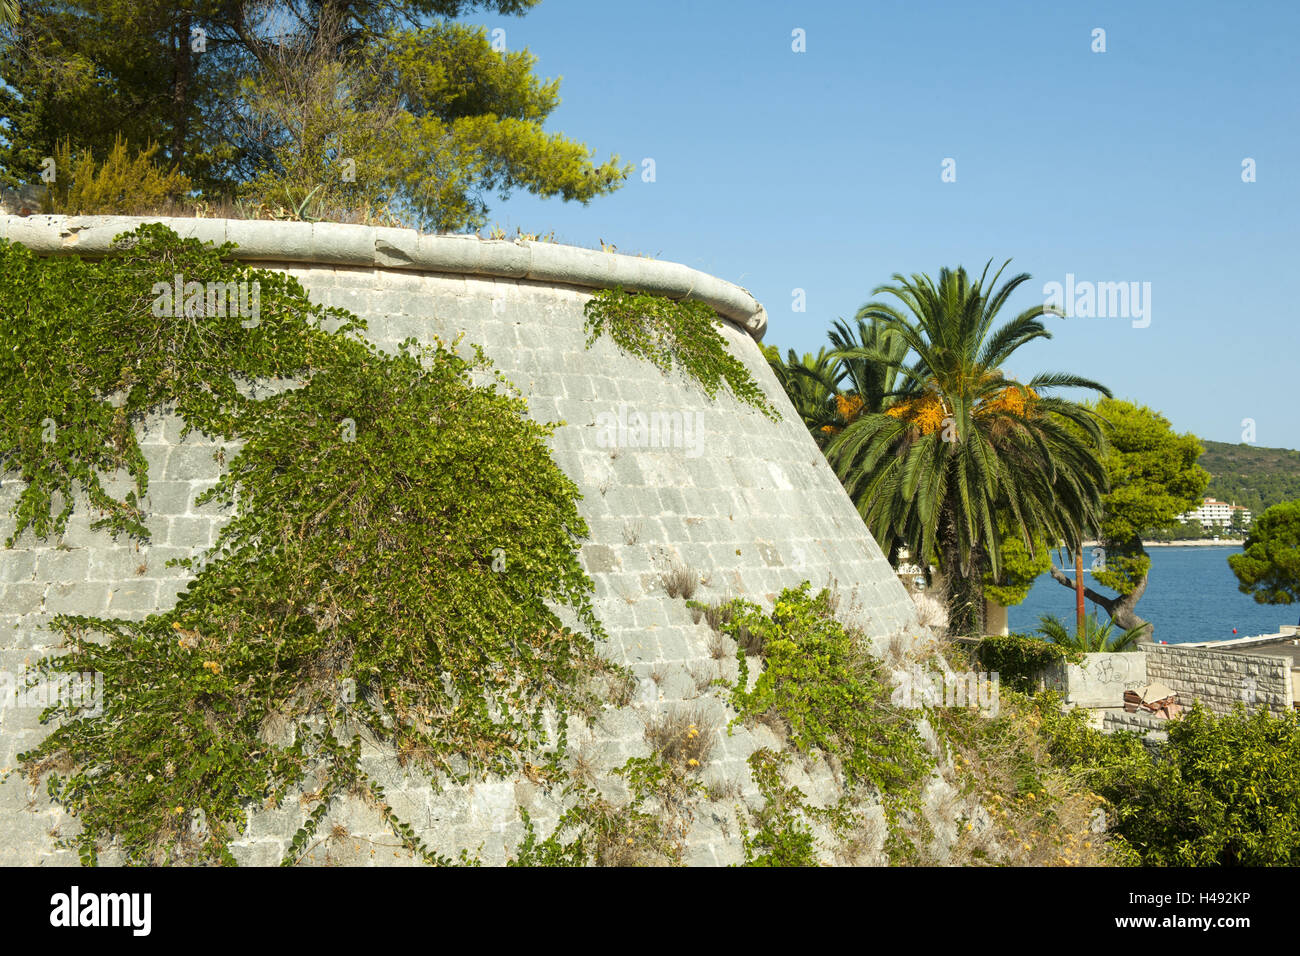 Croatia, Dalmatia, Vis, fortress attack the fortifications established by the Austrians, in 1830, Stock Photo